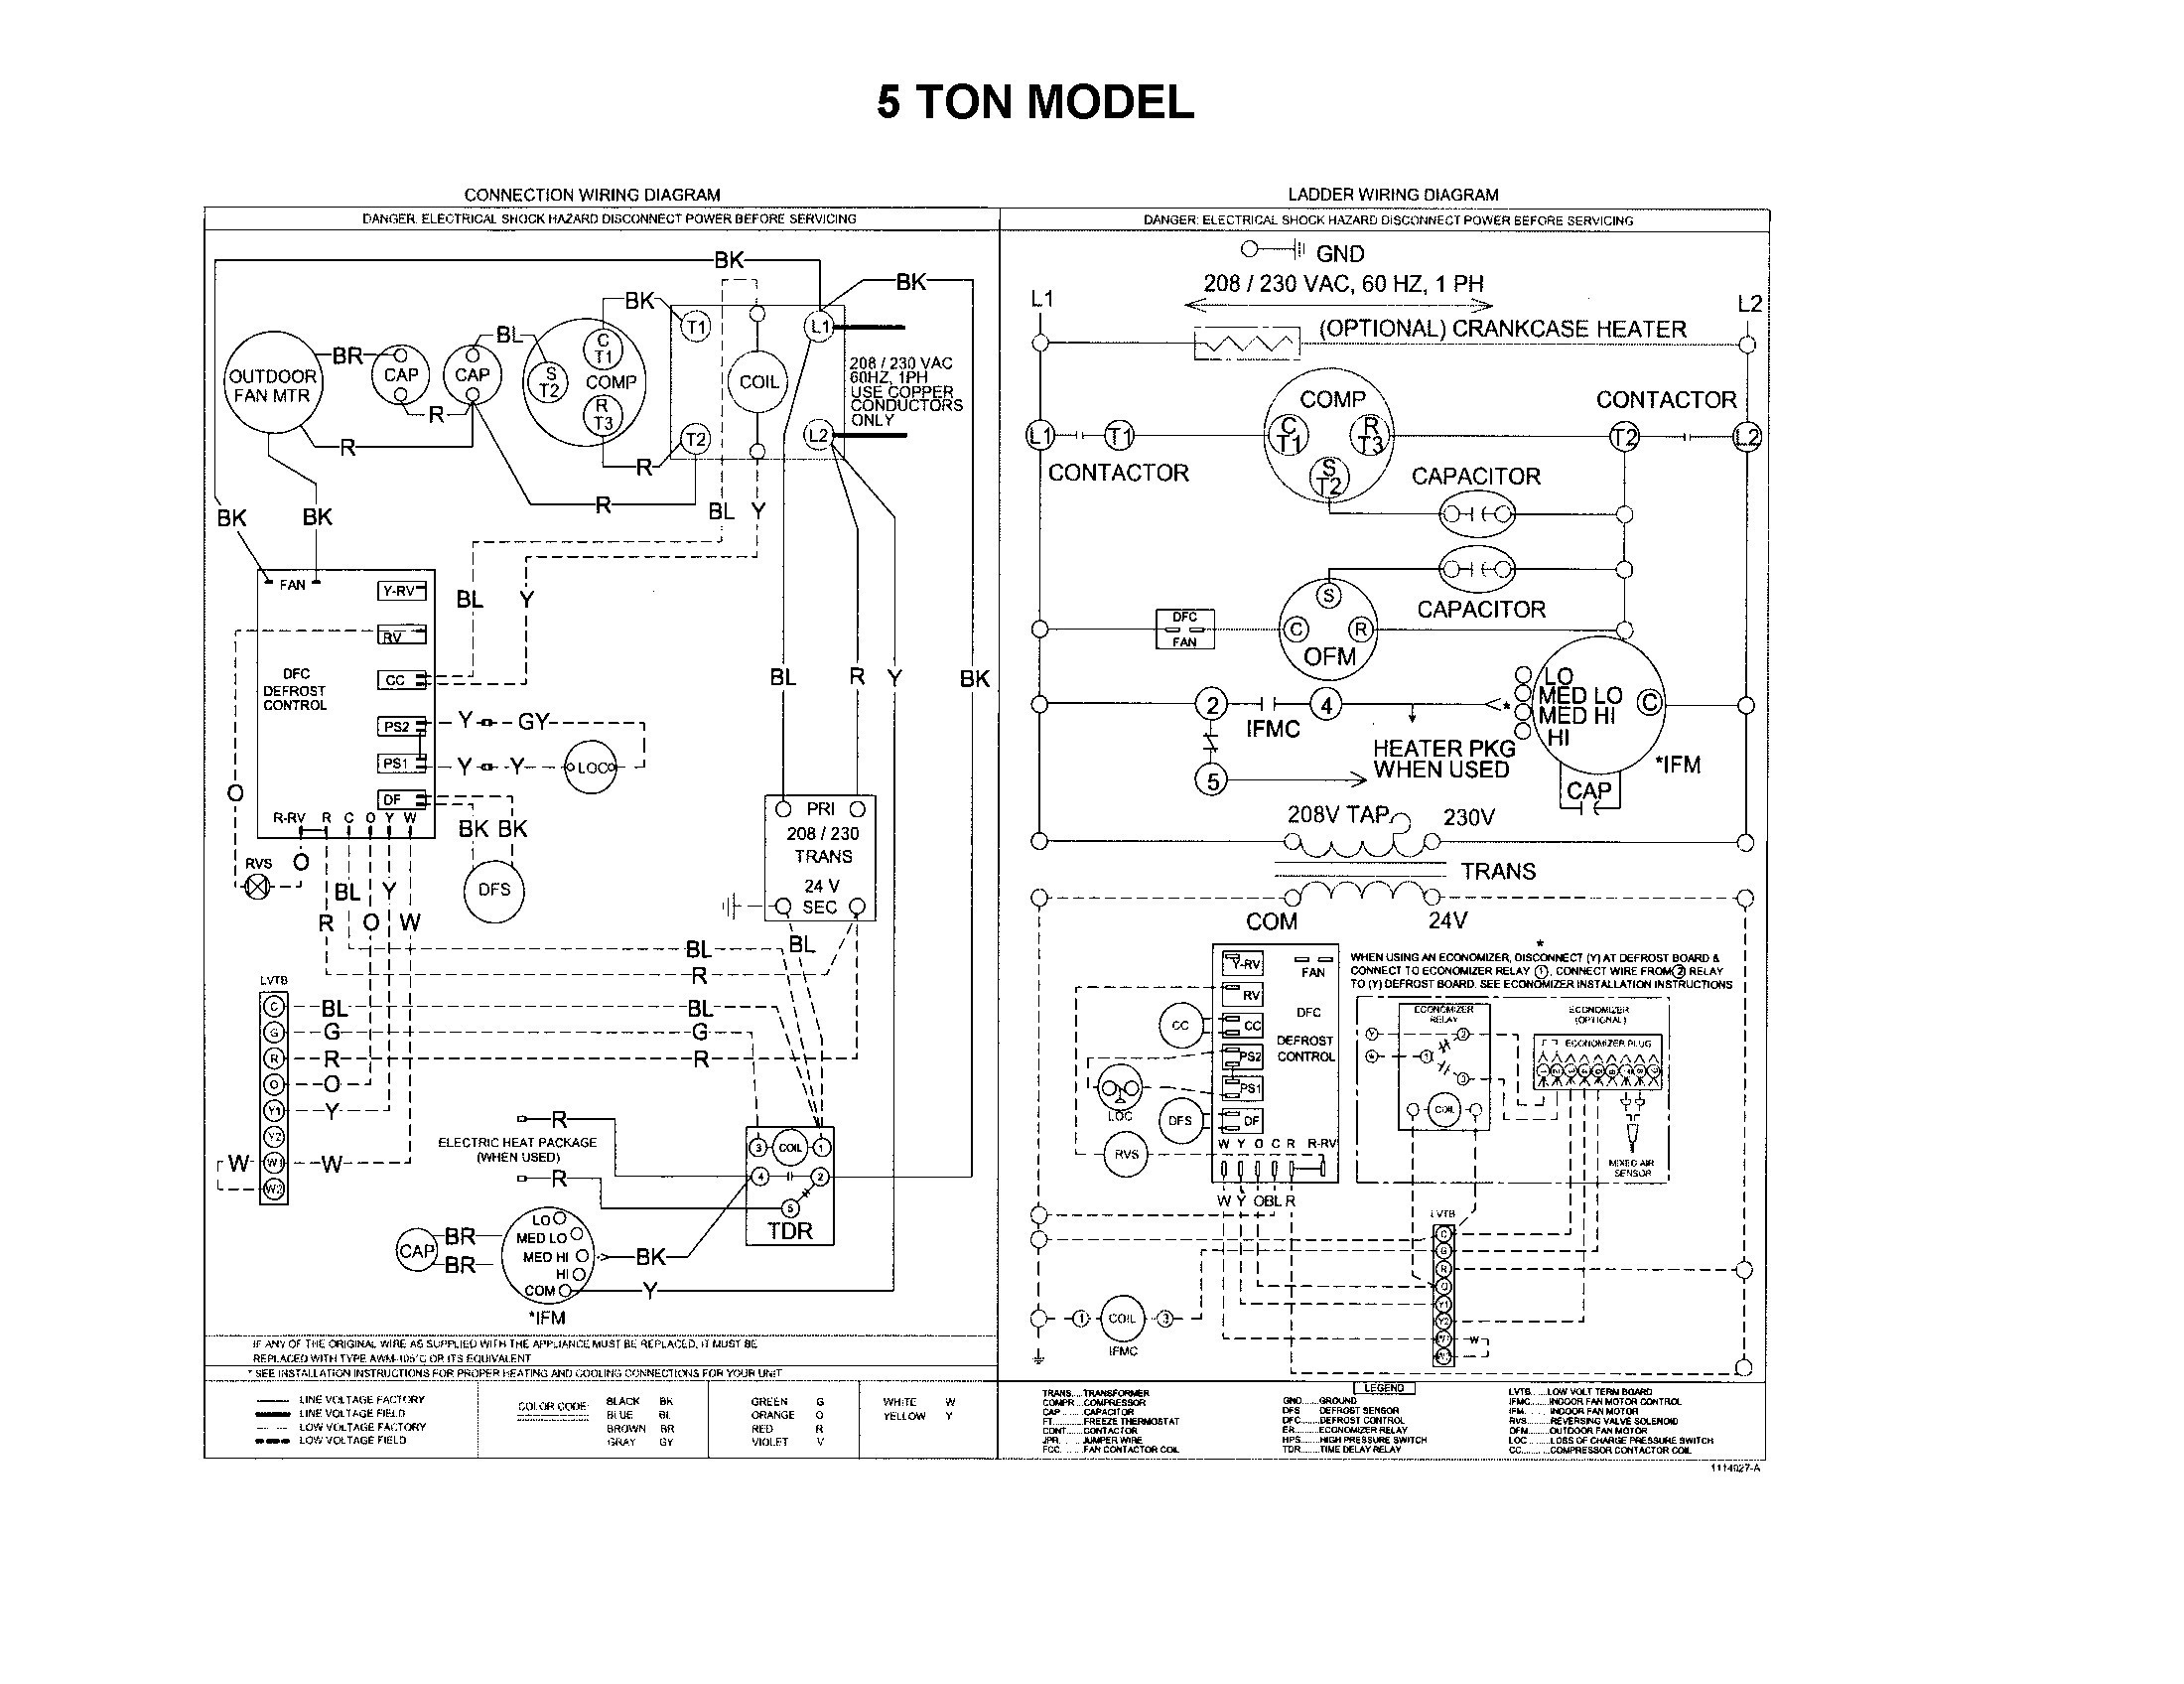 goodman heat pump package unit wiring diagram Download-Goodman Heat Pump Wiring Diagram Elegant Package Unit Incredible 12-d